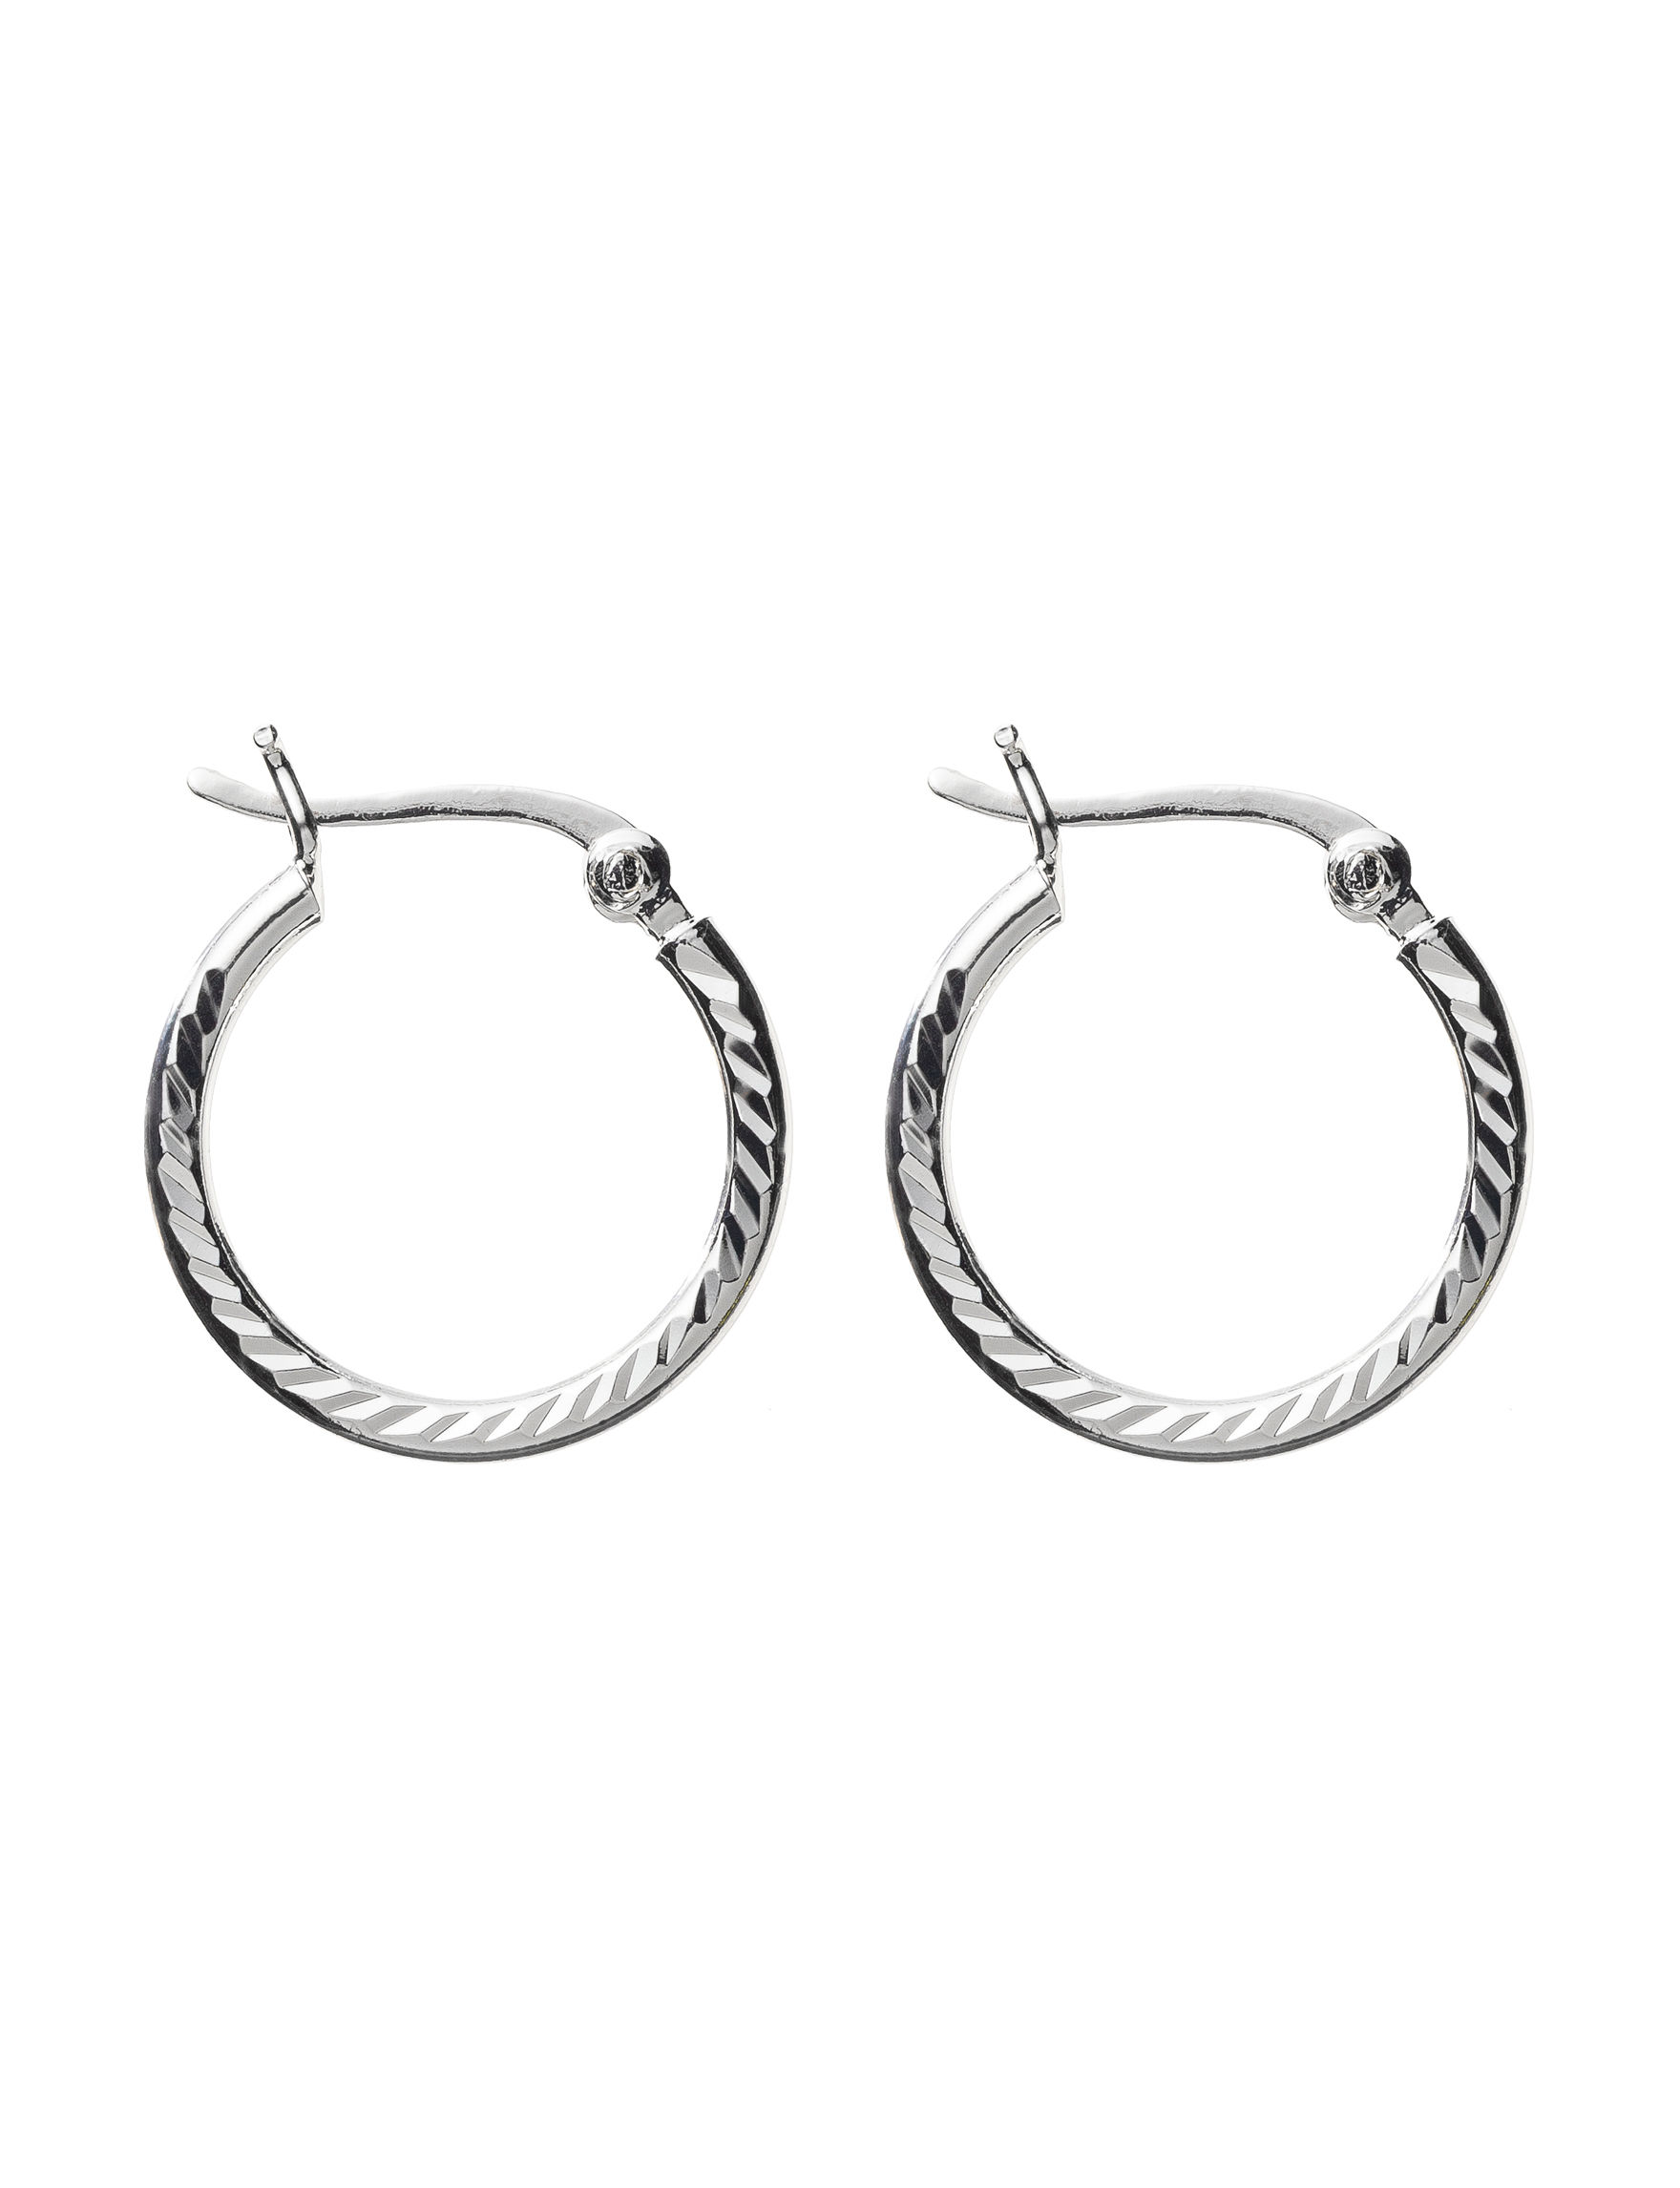 Danecraft Silver Earrings Fine Jewelry